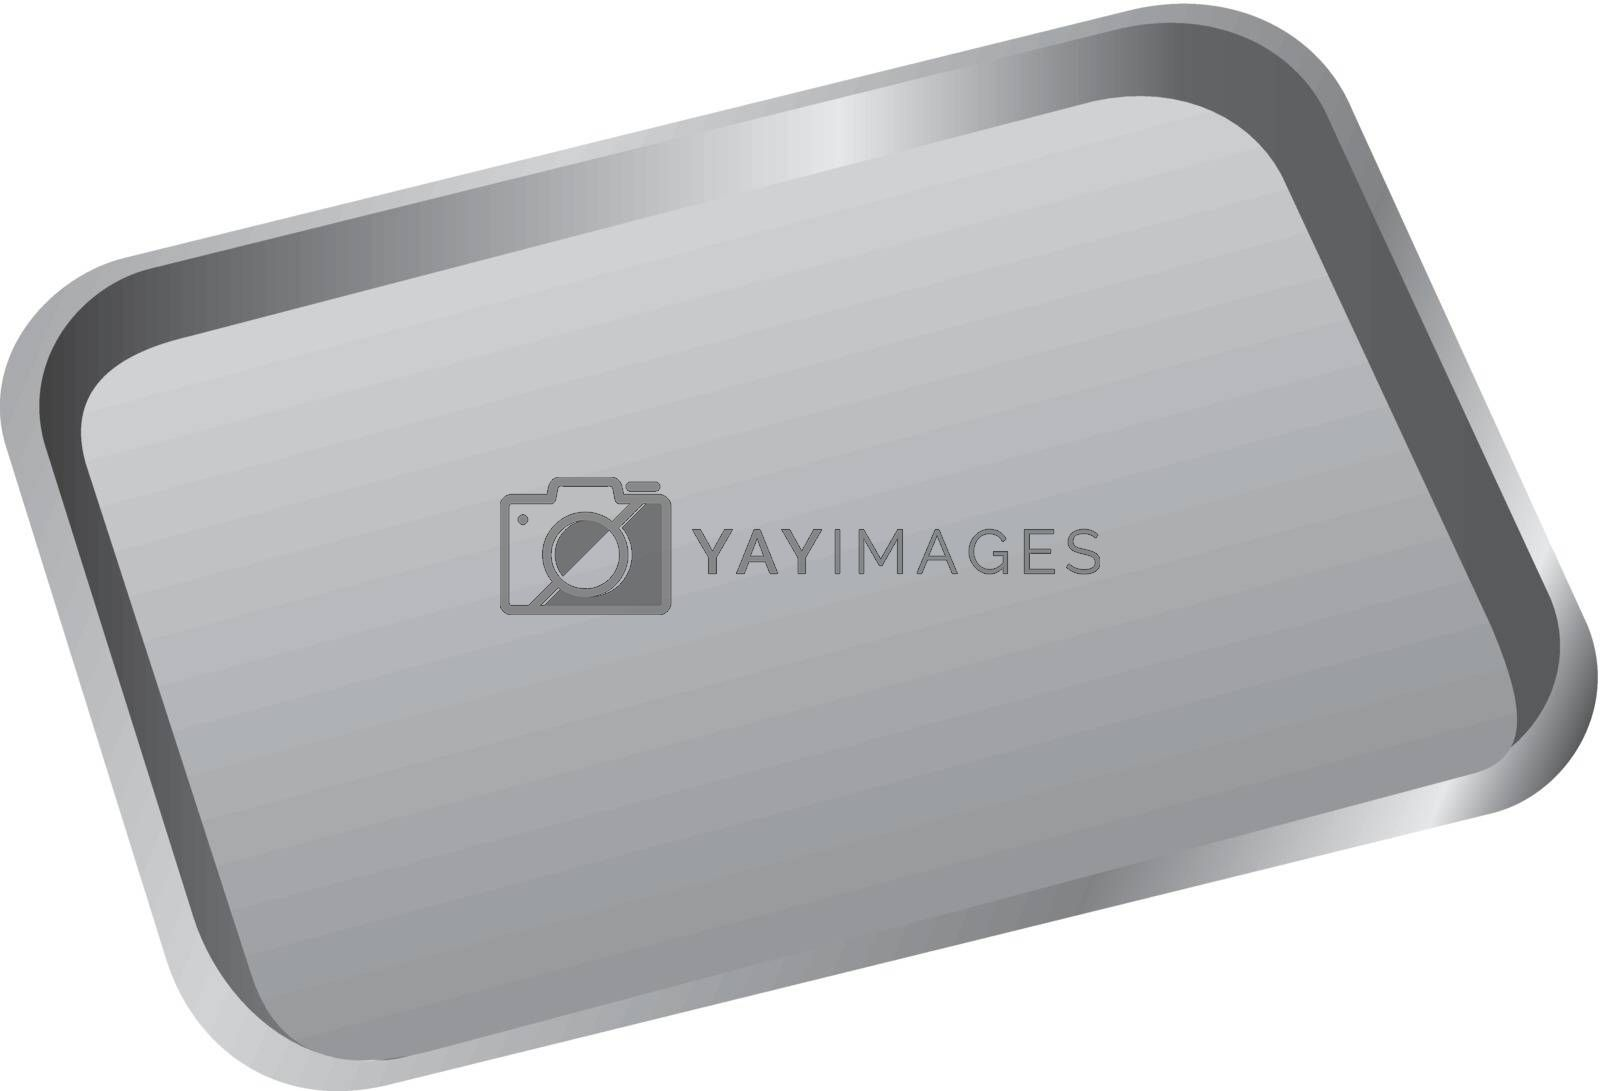 Stomatological tray to accommodate a dental tool. Vector illustration.